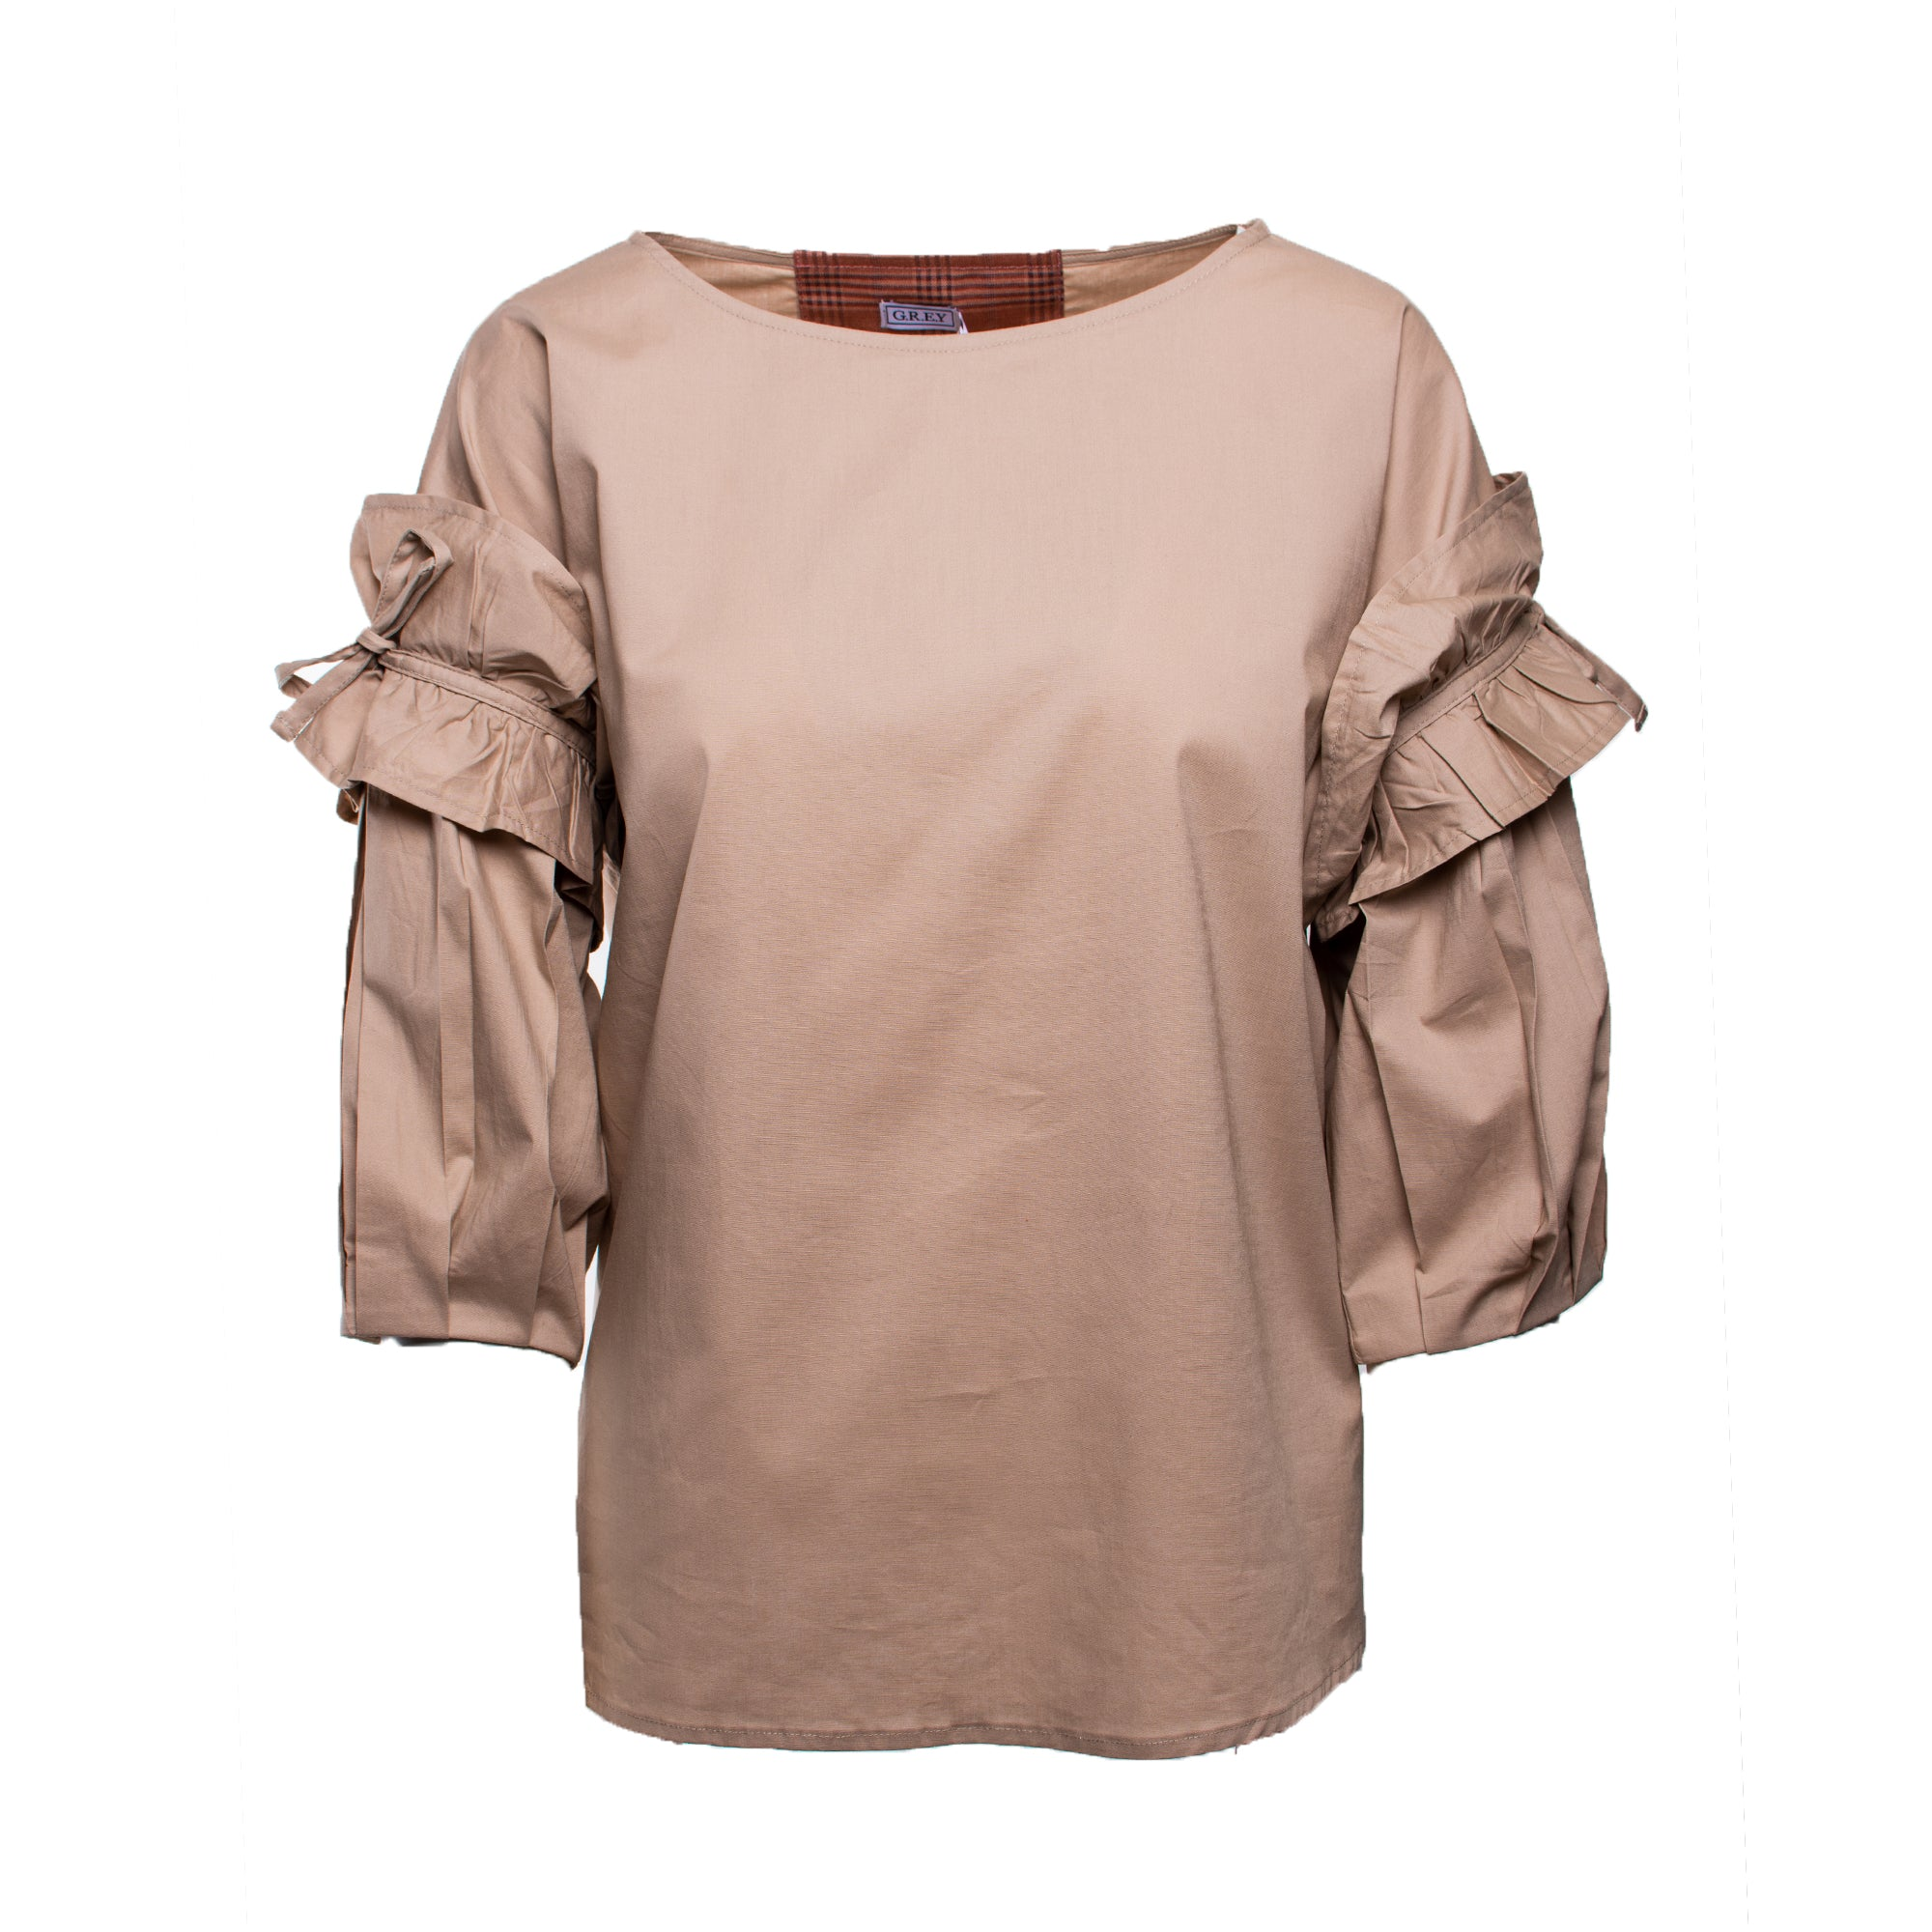 Lantern sleeve blouse | Someday Blouse